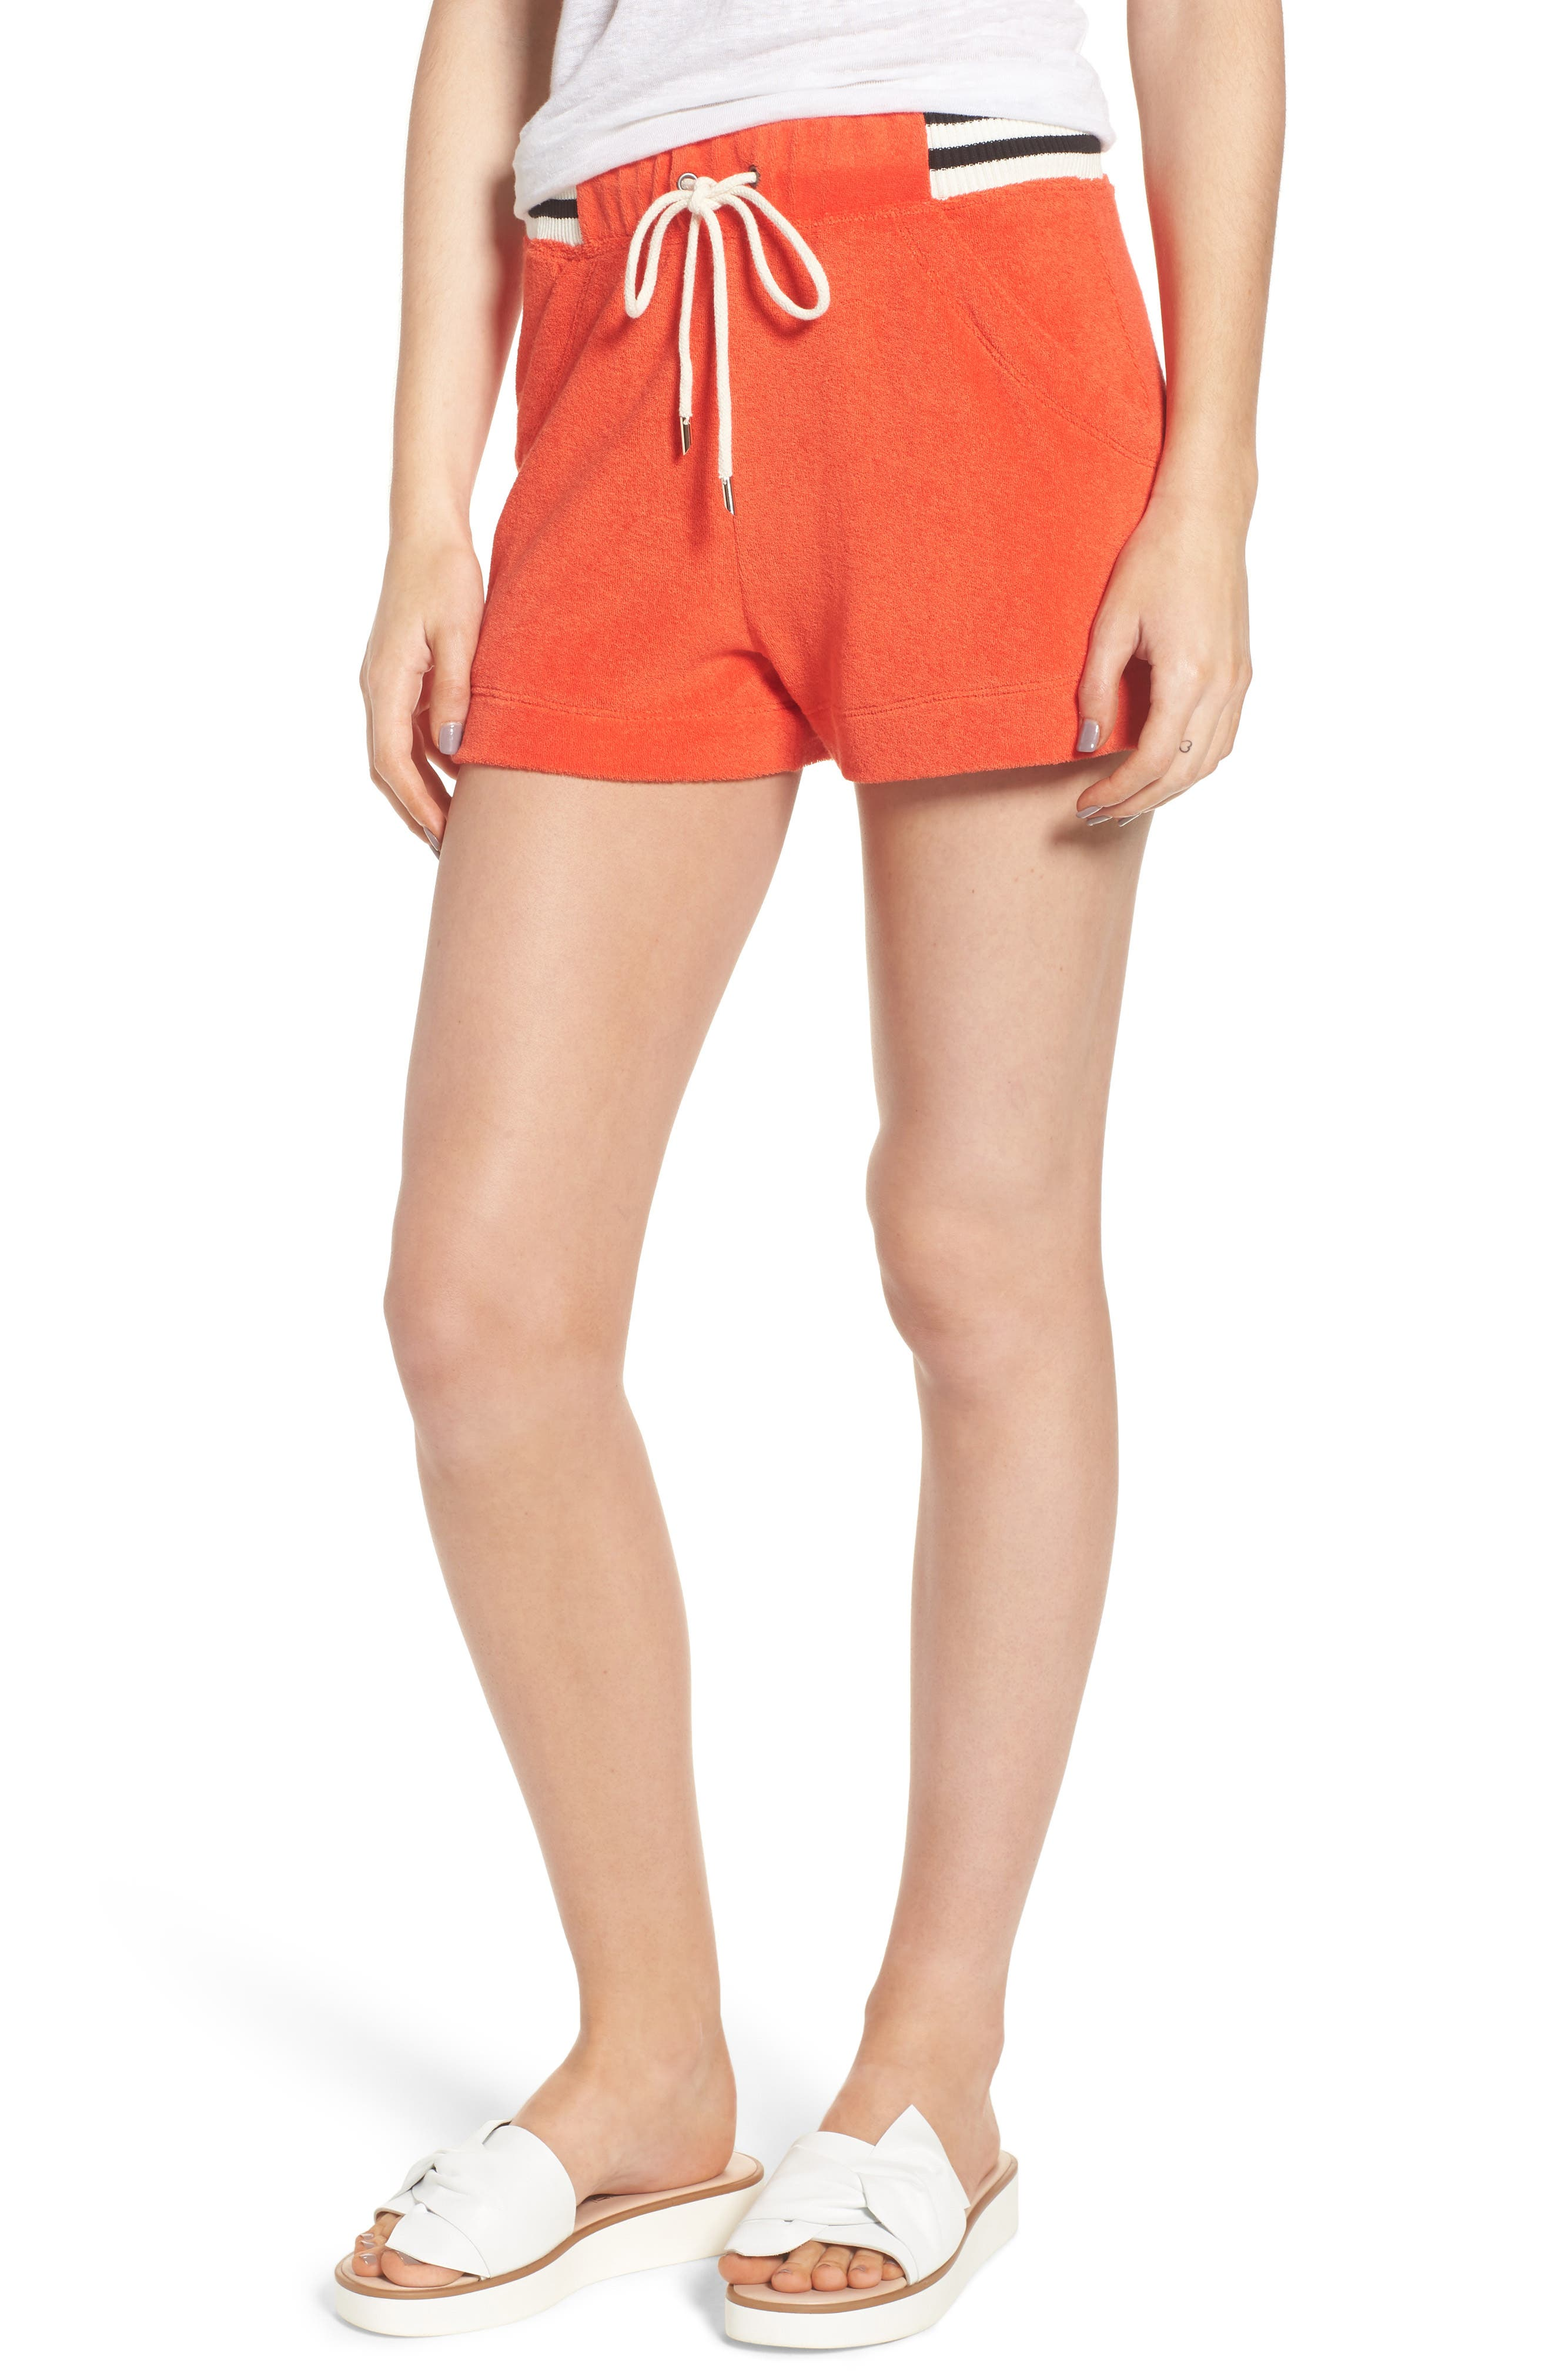 x Margherita Sportivo French Terry Shorts,                             Main thumbnail 1, color,                             Red